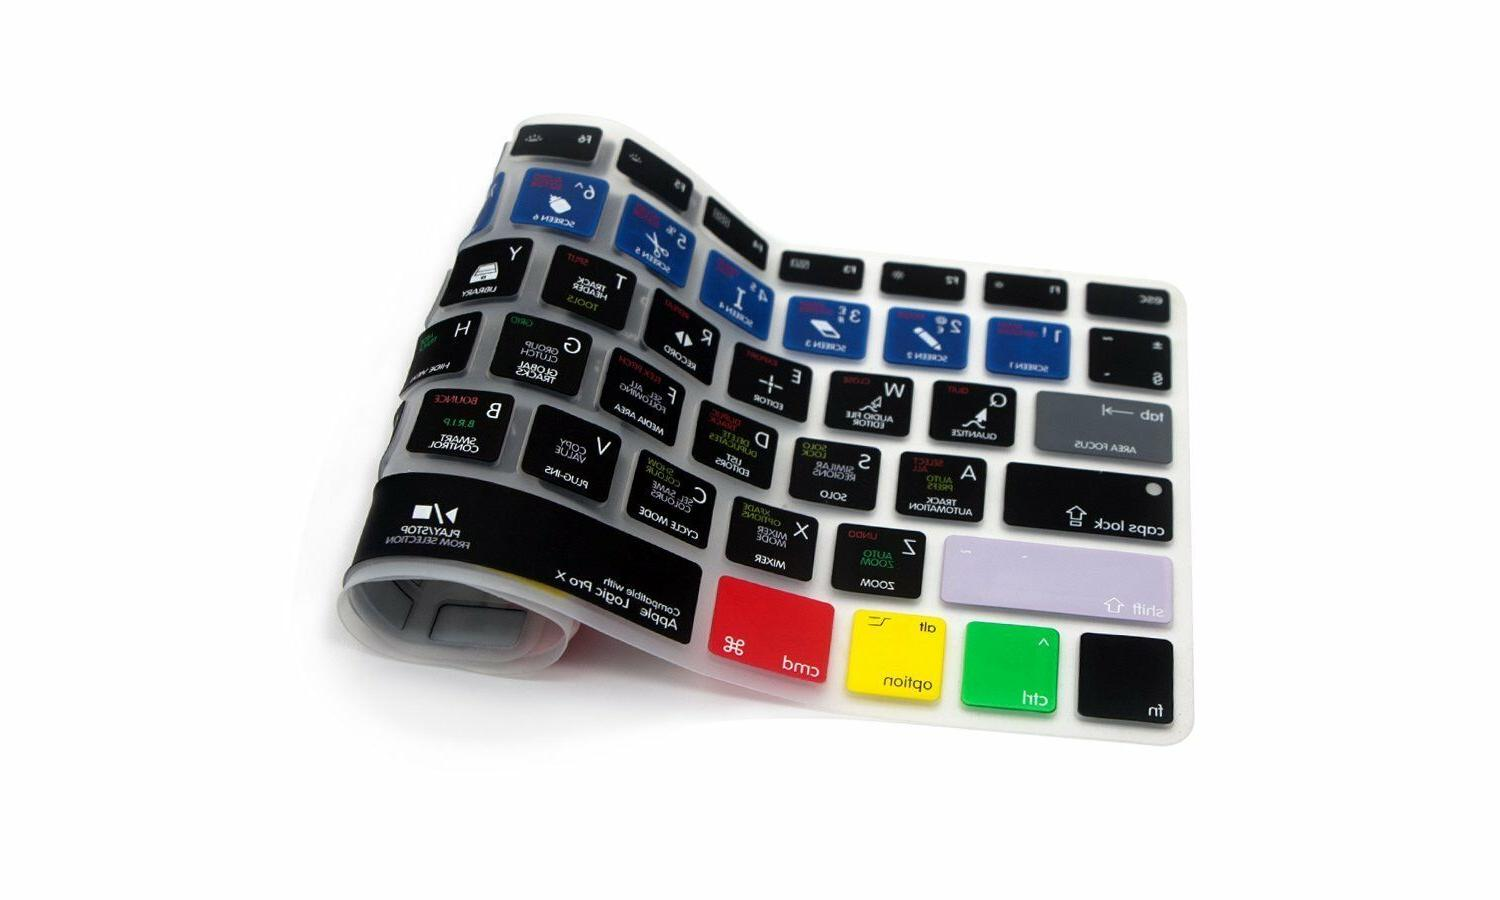 HRH Functional Hot Shortcut Silicone Keyboard Macbook